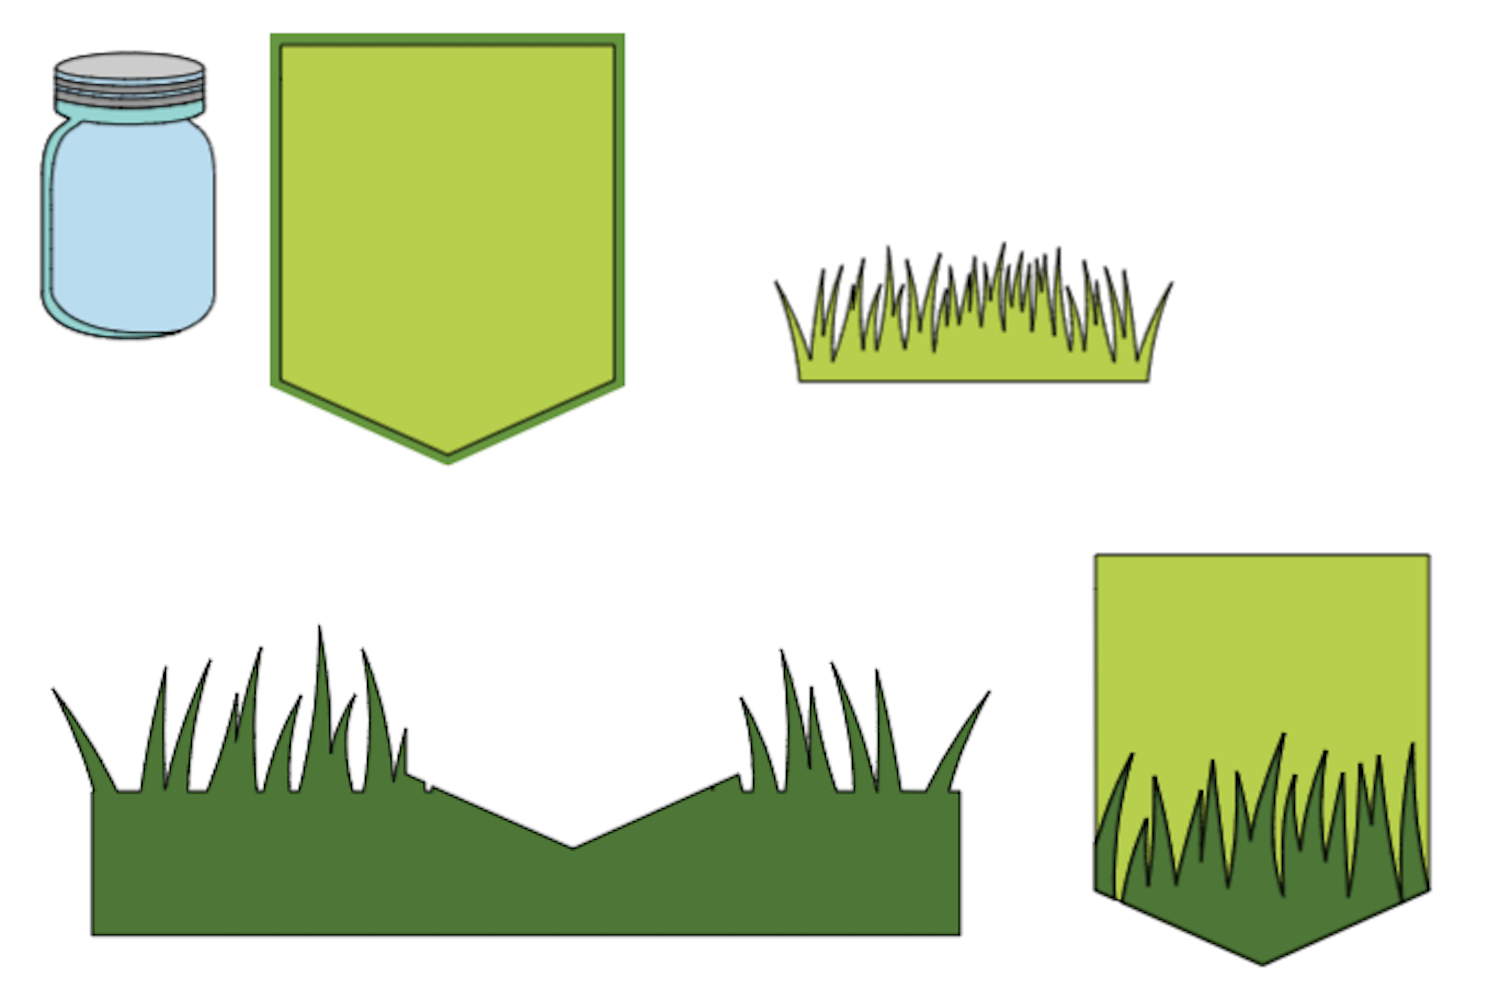 using the slice feature to cut the grass shape